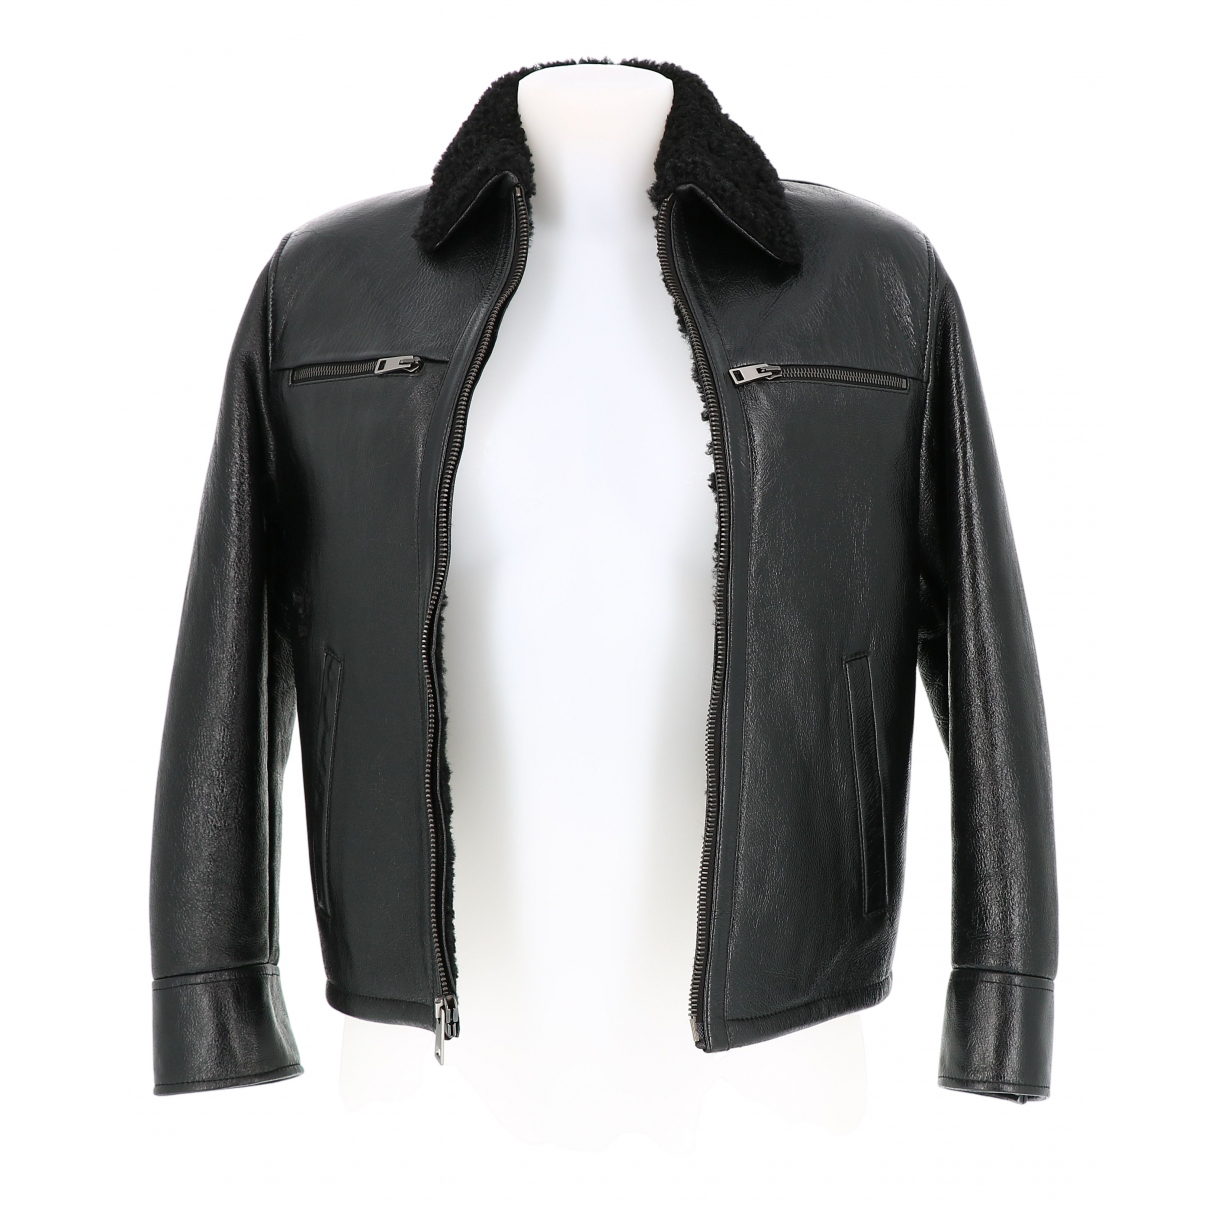 Dior N Black Leather Leather jacket for Women 36 FR